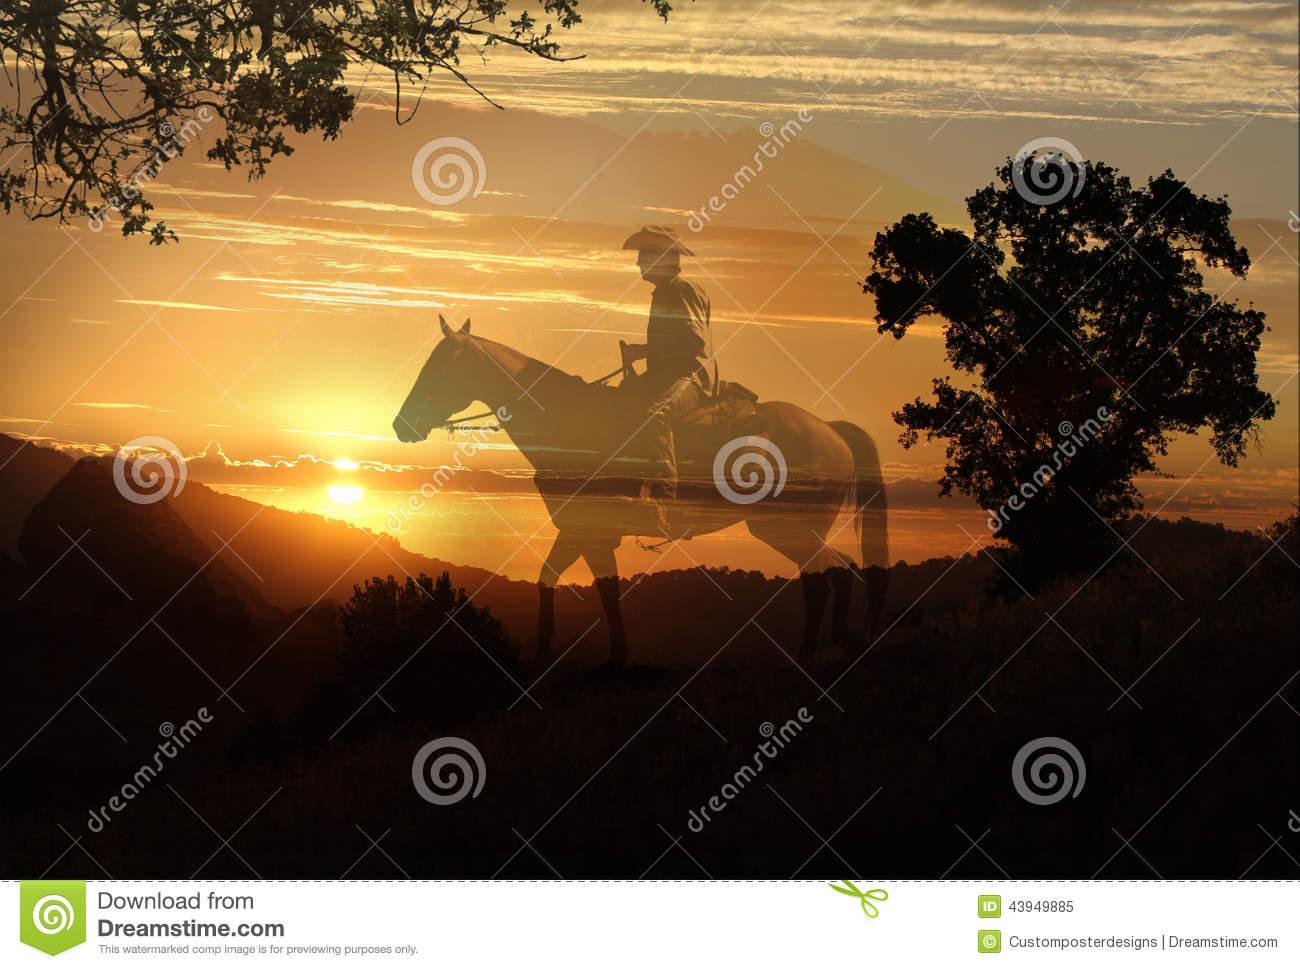 Download An Artistic Image Of A Cowboy Riding In A Meadow With Trees And A Transparent Yellow Sunet Background. Stock Image - Image of drama, ravens: 43949885